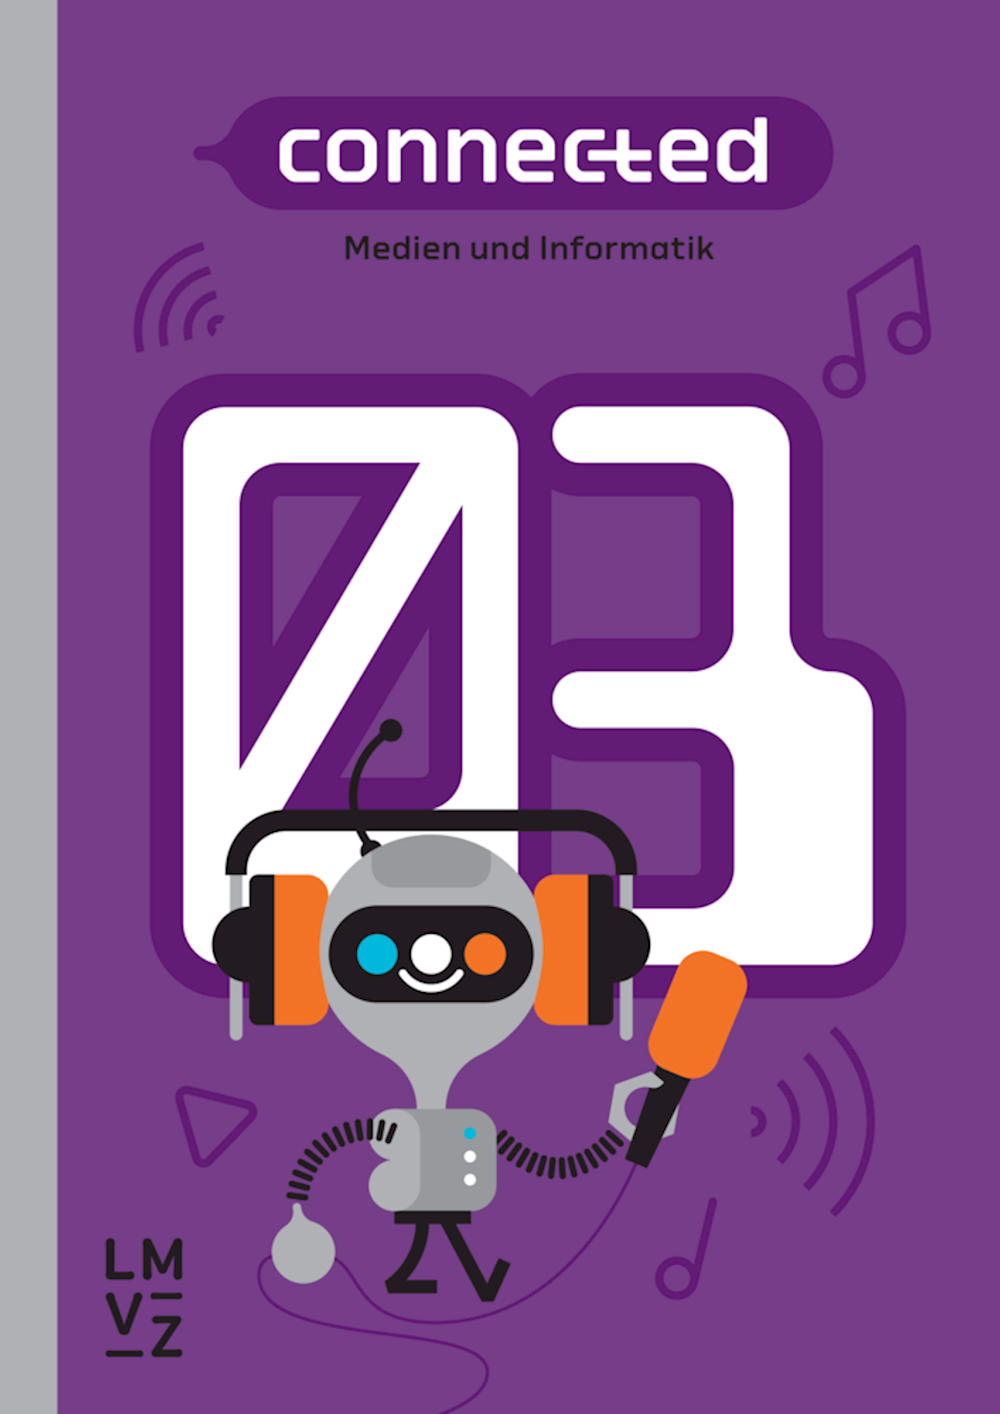 Preview image for LOM object connected - Medien und Informatik 03